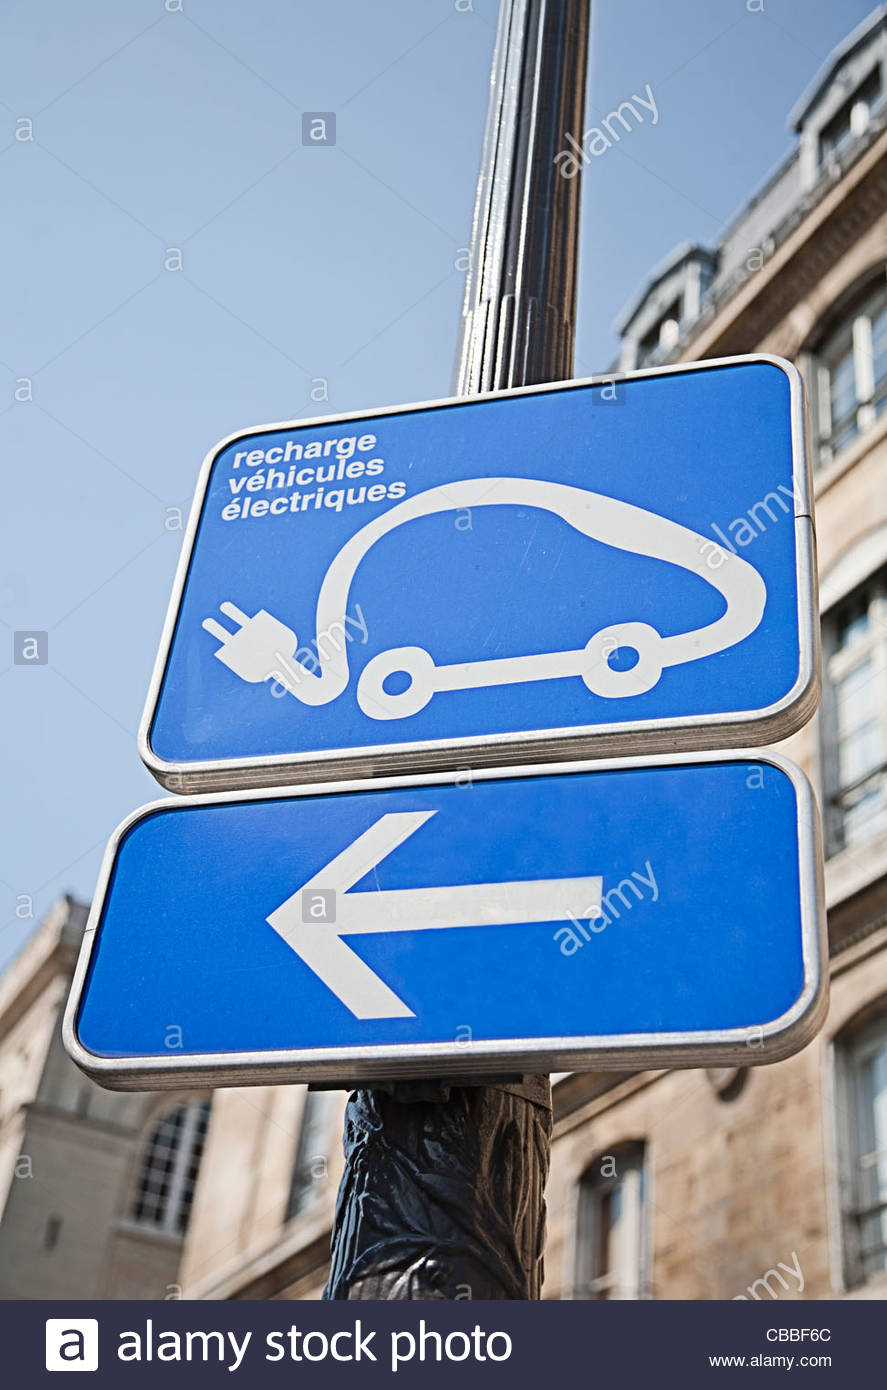 Electric car charging station sign - Stock Image